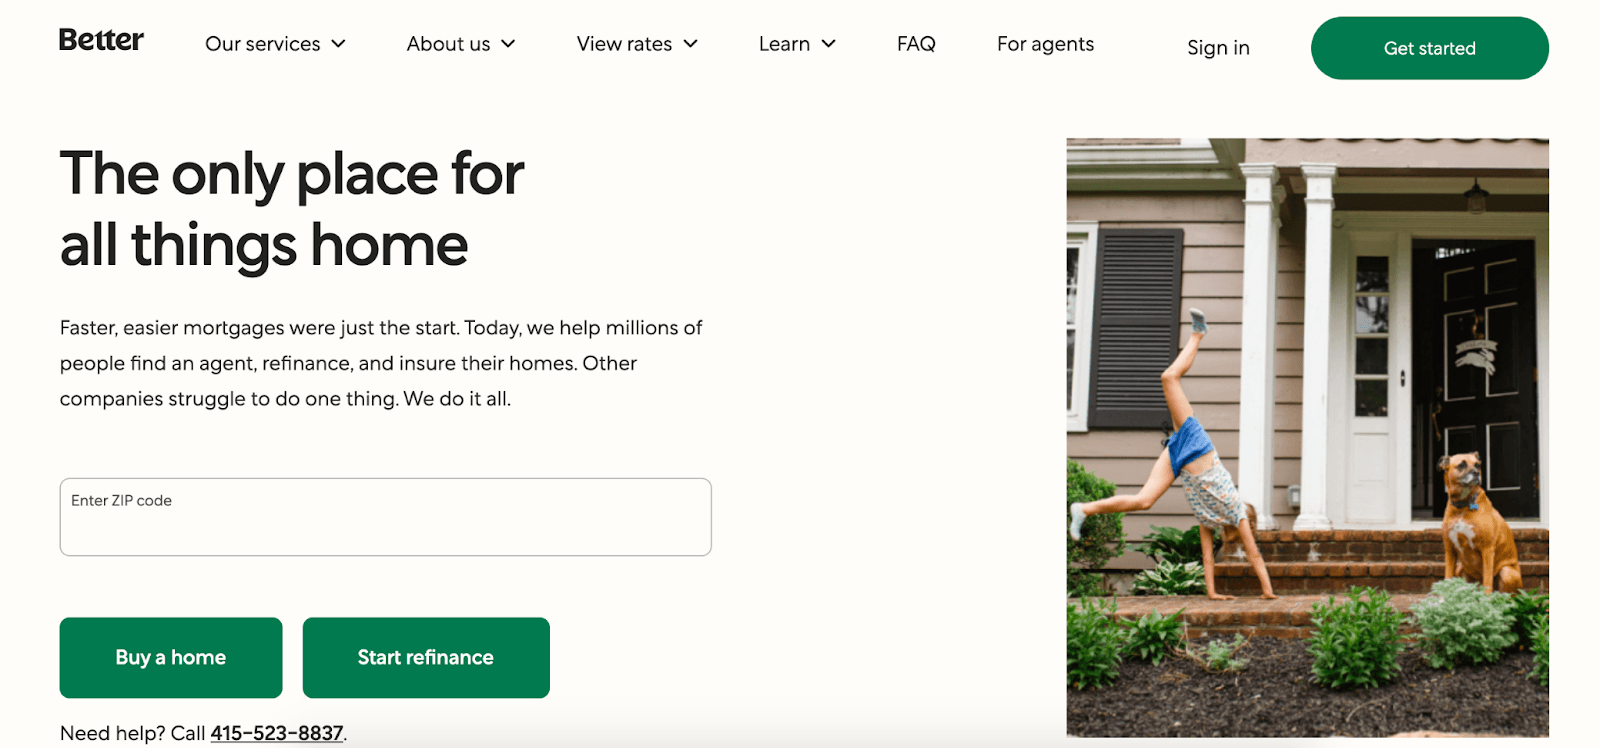 Better.com: Affordable Mortgages In An Easy-to-Use Platform - Buy a home